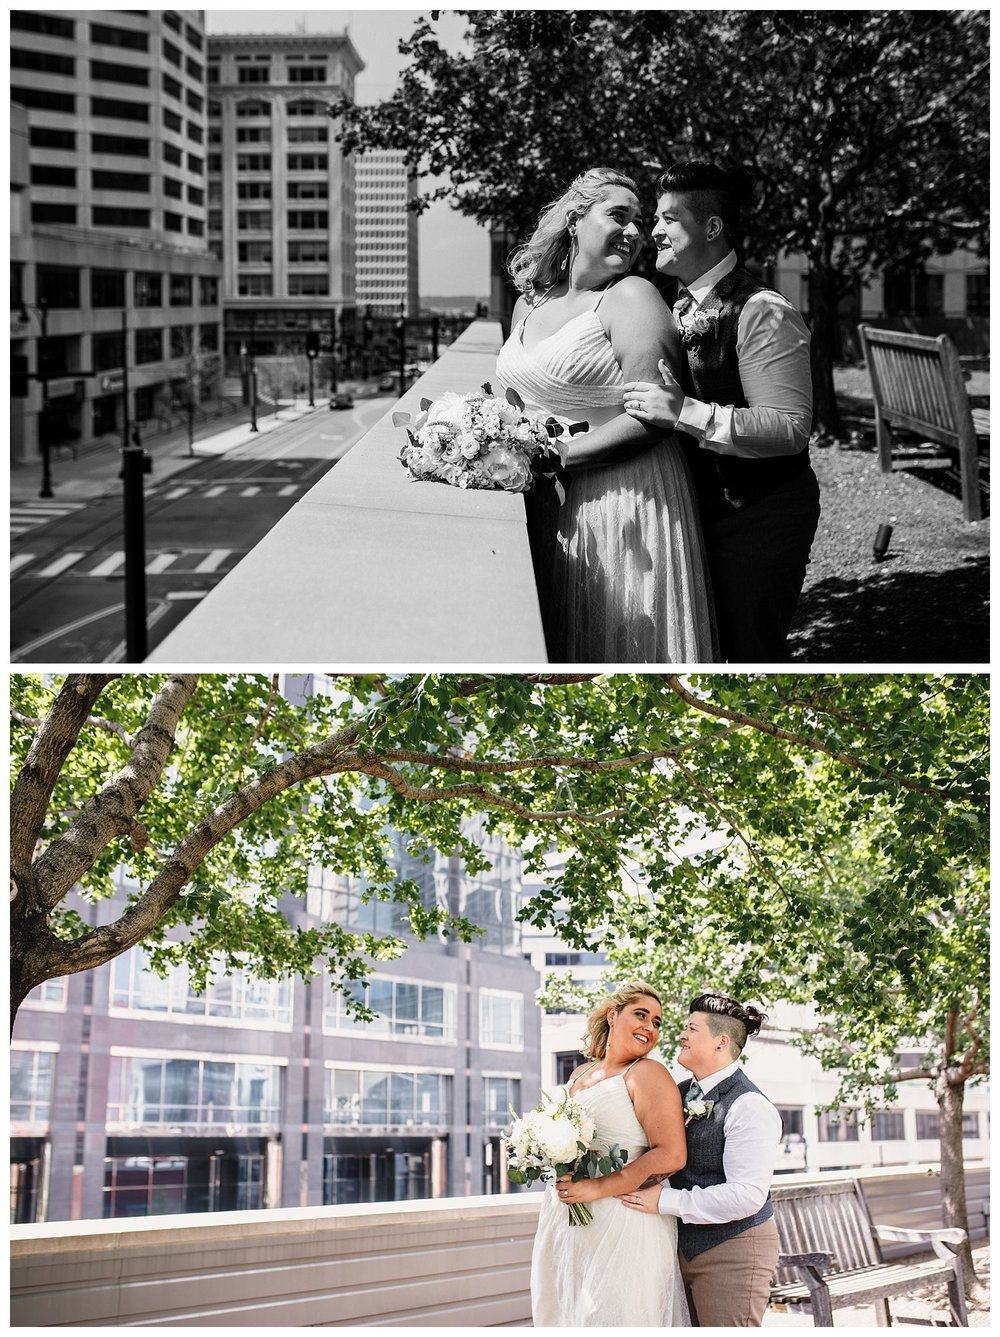 Kelsey_Diane_Photography_The_Vow_Exchange_Kansas_City_LGBT_Friendly_Wedding_Photographer_Kansas_City_Scout_Ica_0712.jpg